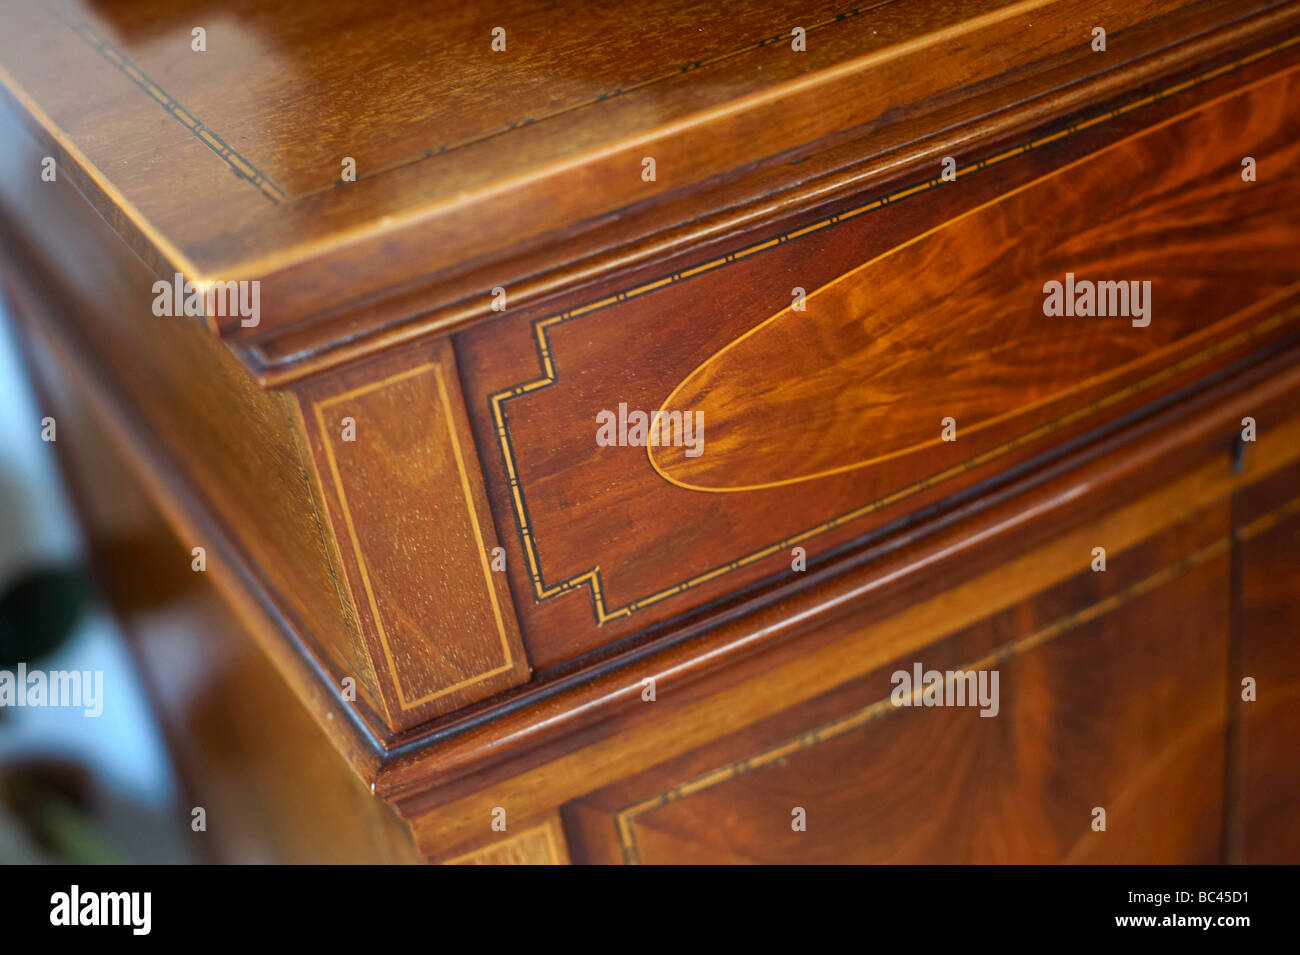 Antique Furniture detail, on cupboard type 78rpm record player, UK - Stock Image